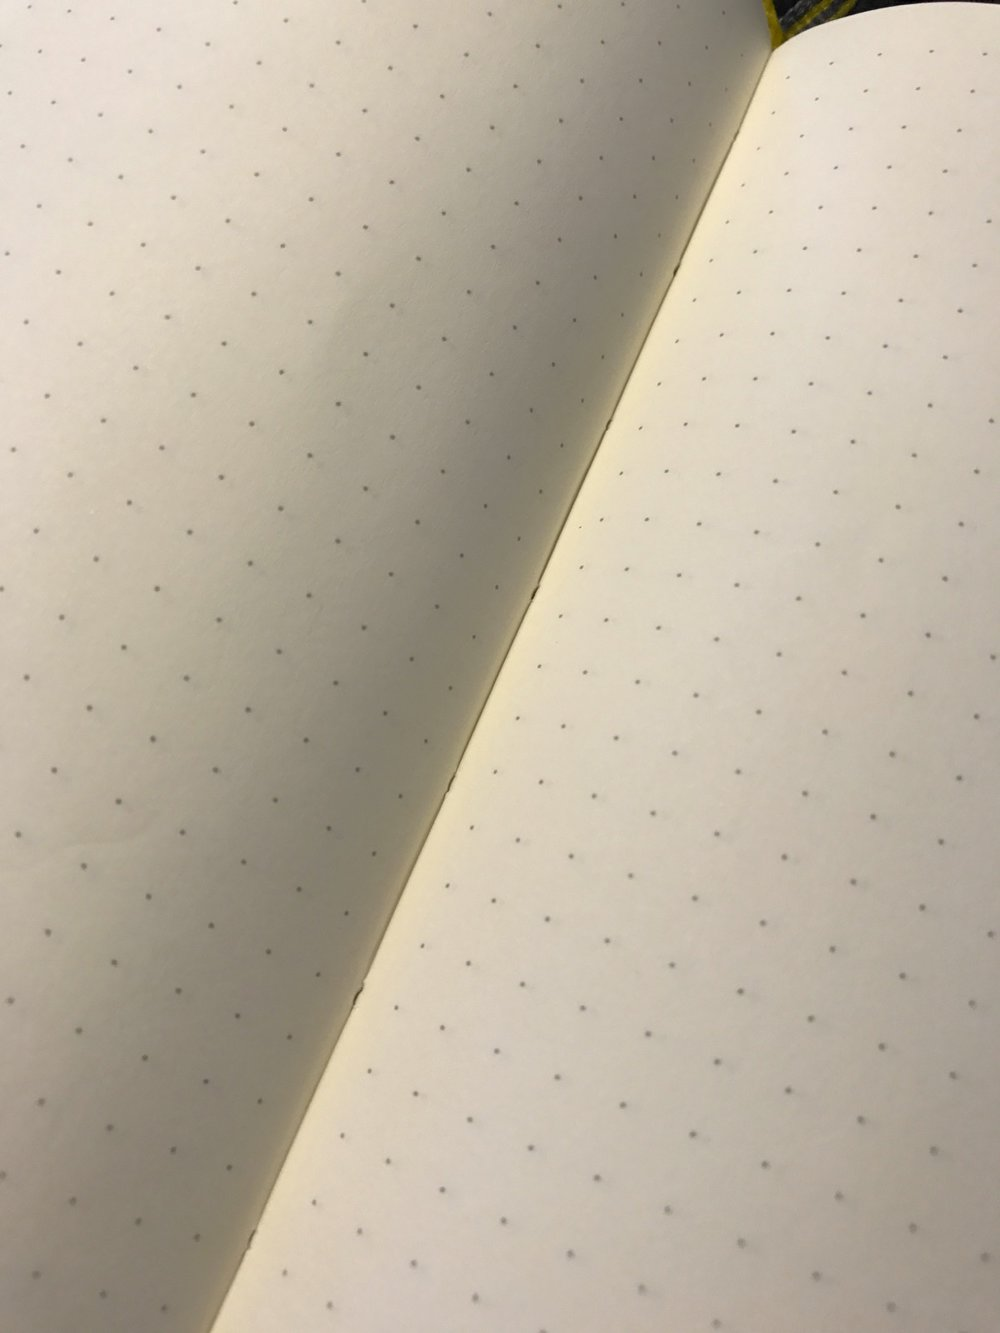 The binding of the Leuchtturm1917 is stitched and holds up well.